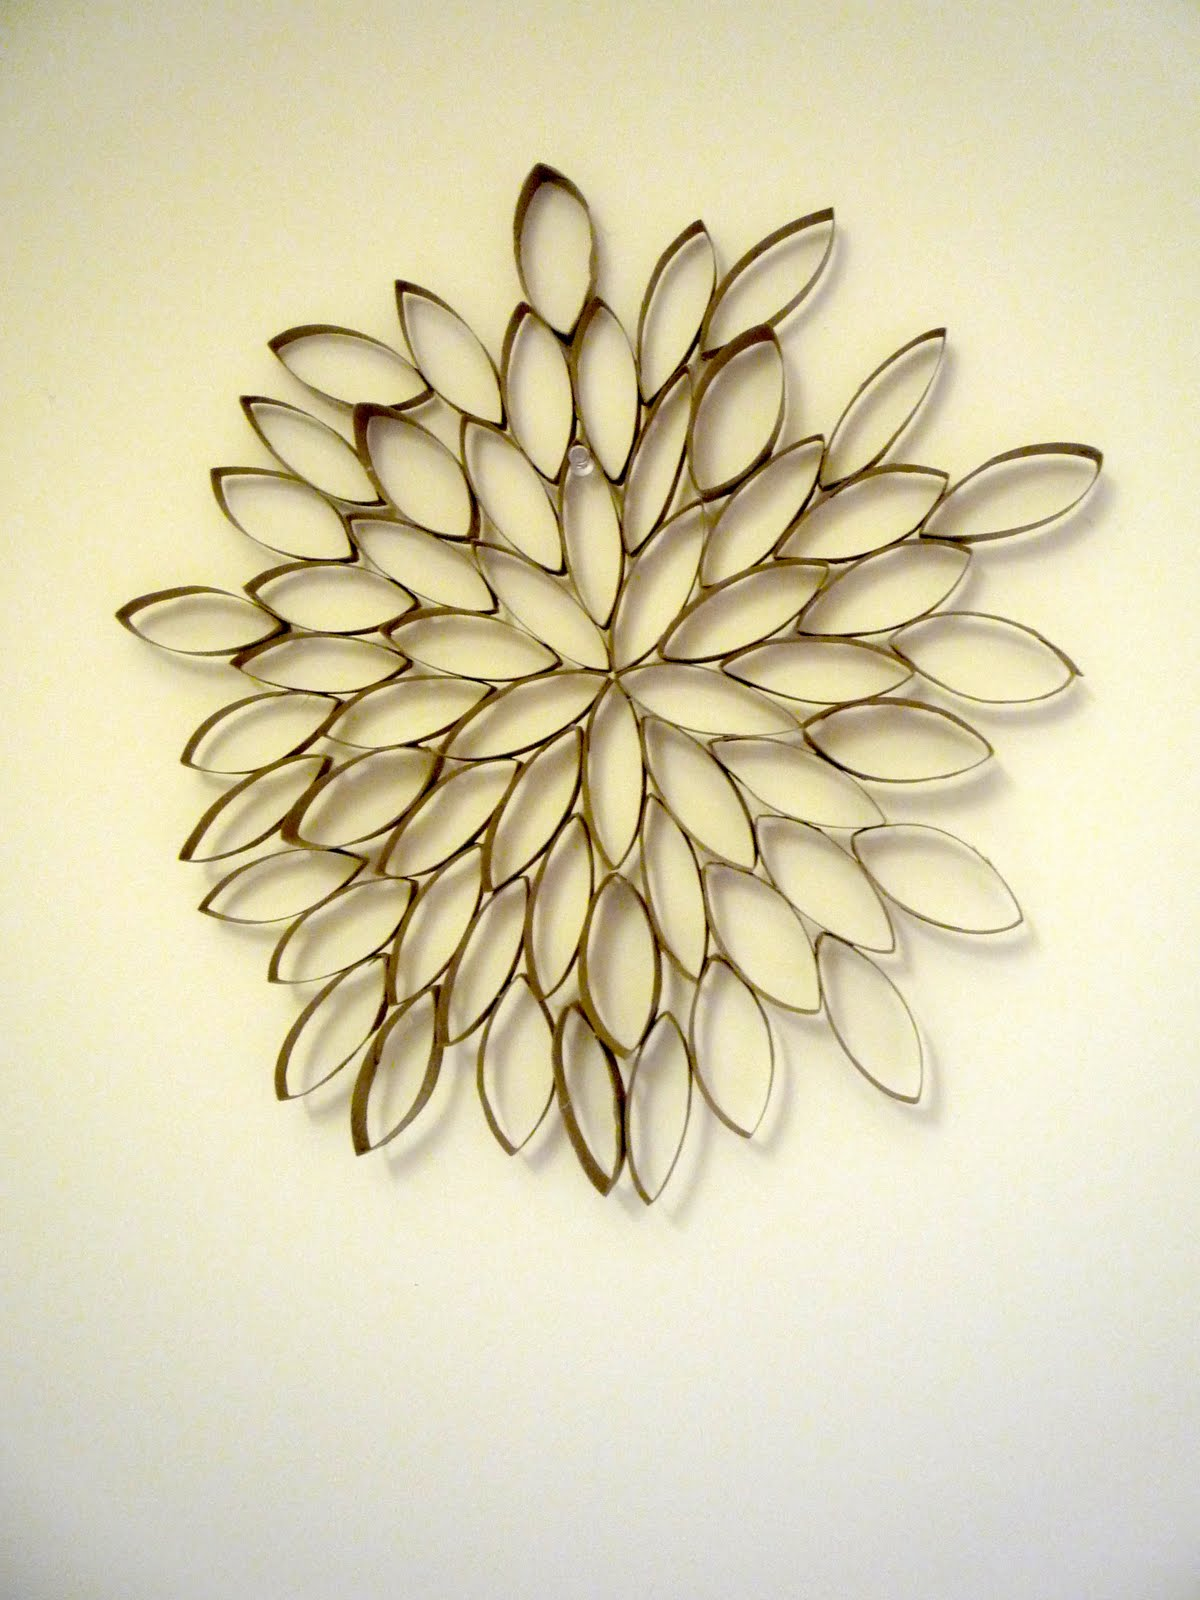 Famous Paper Roll Wall Art Ideas - The Wall Art Decorations ...